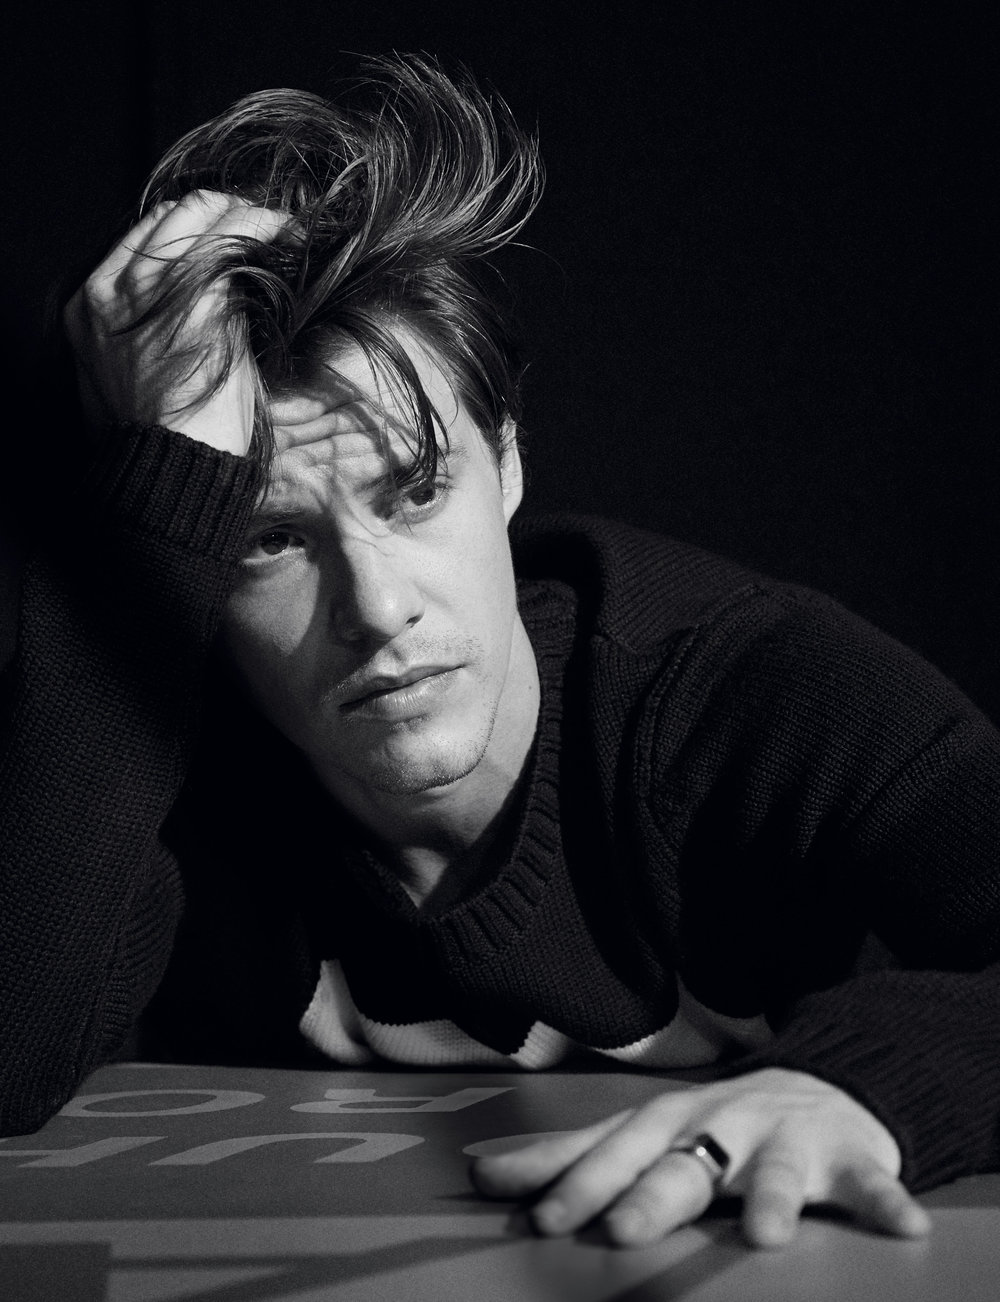 XAVIER SAMUEL, ACTOR